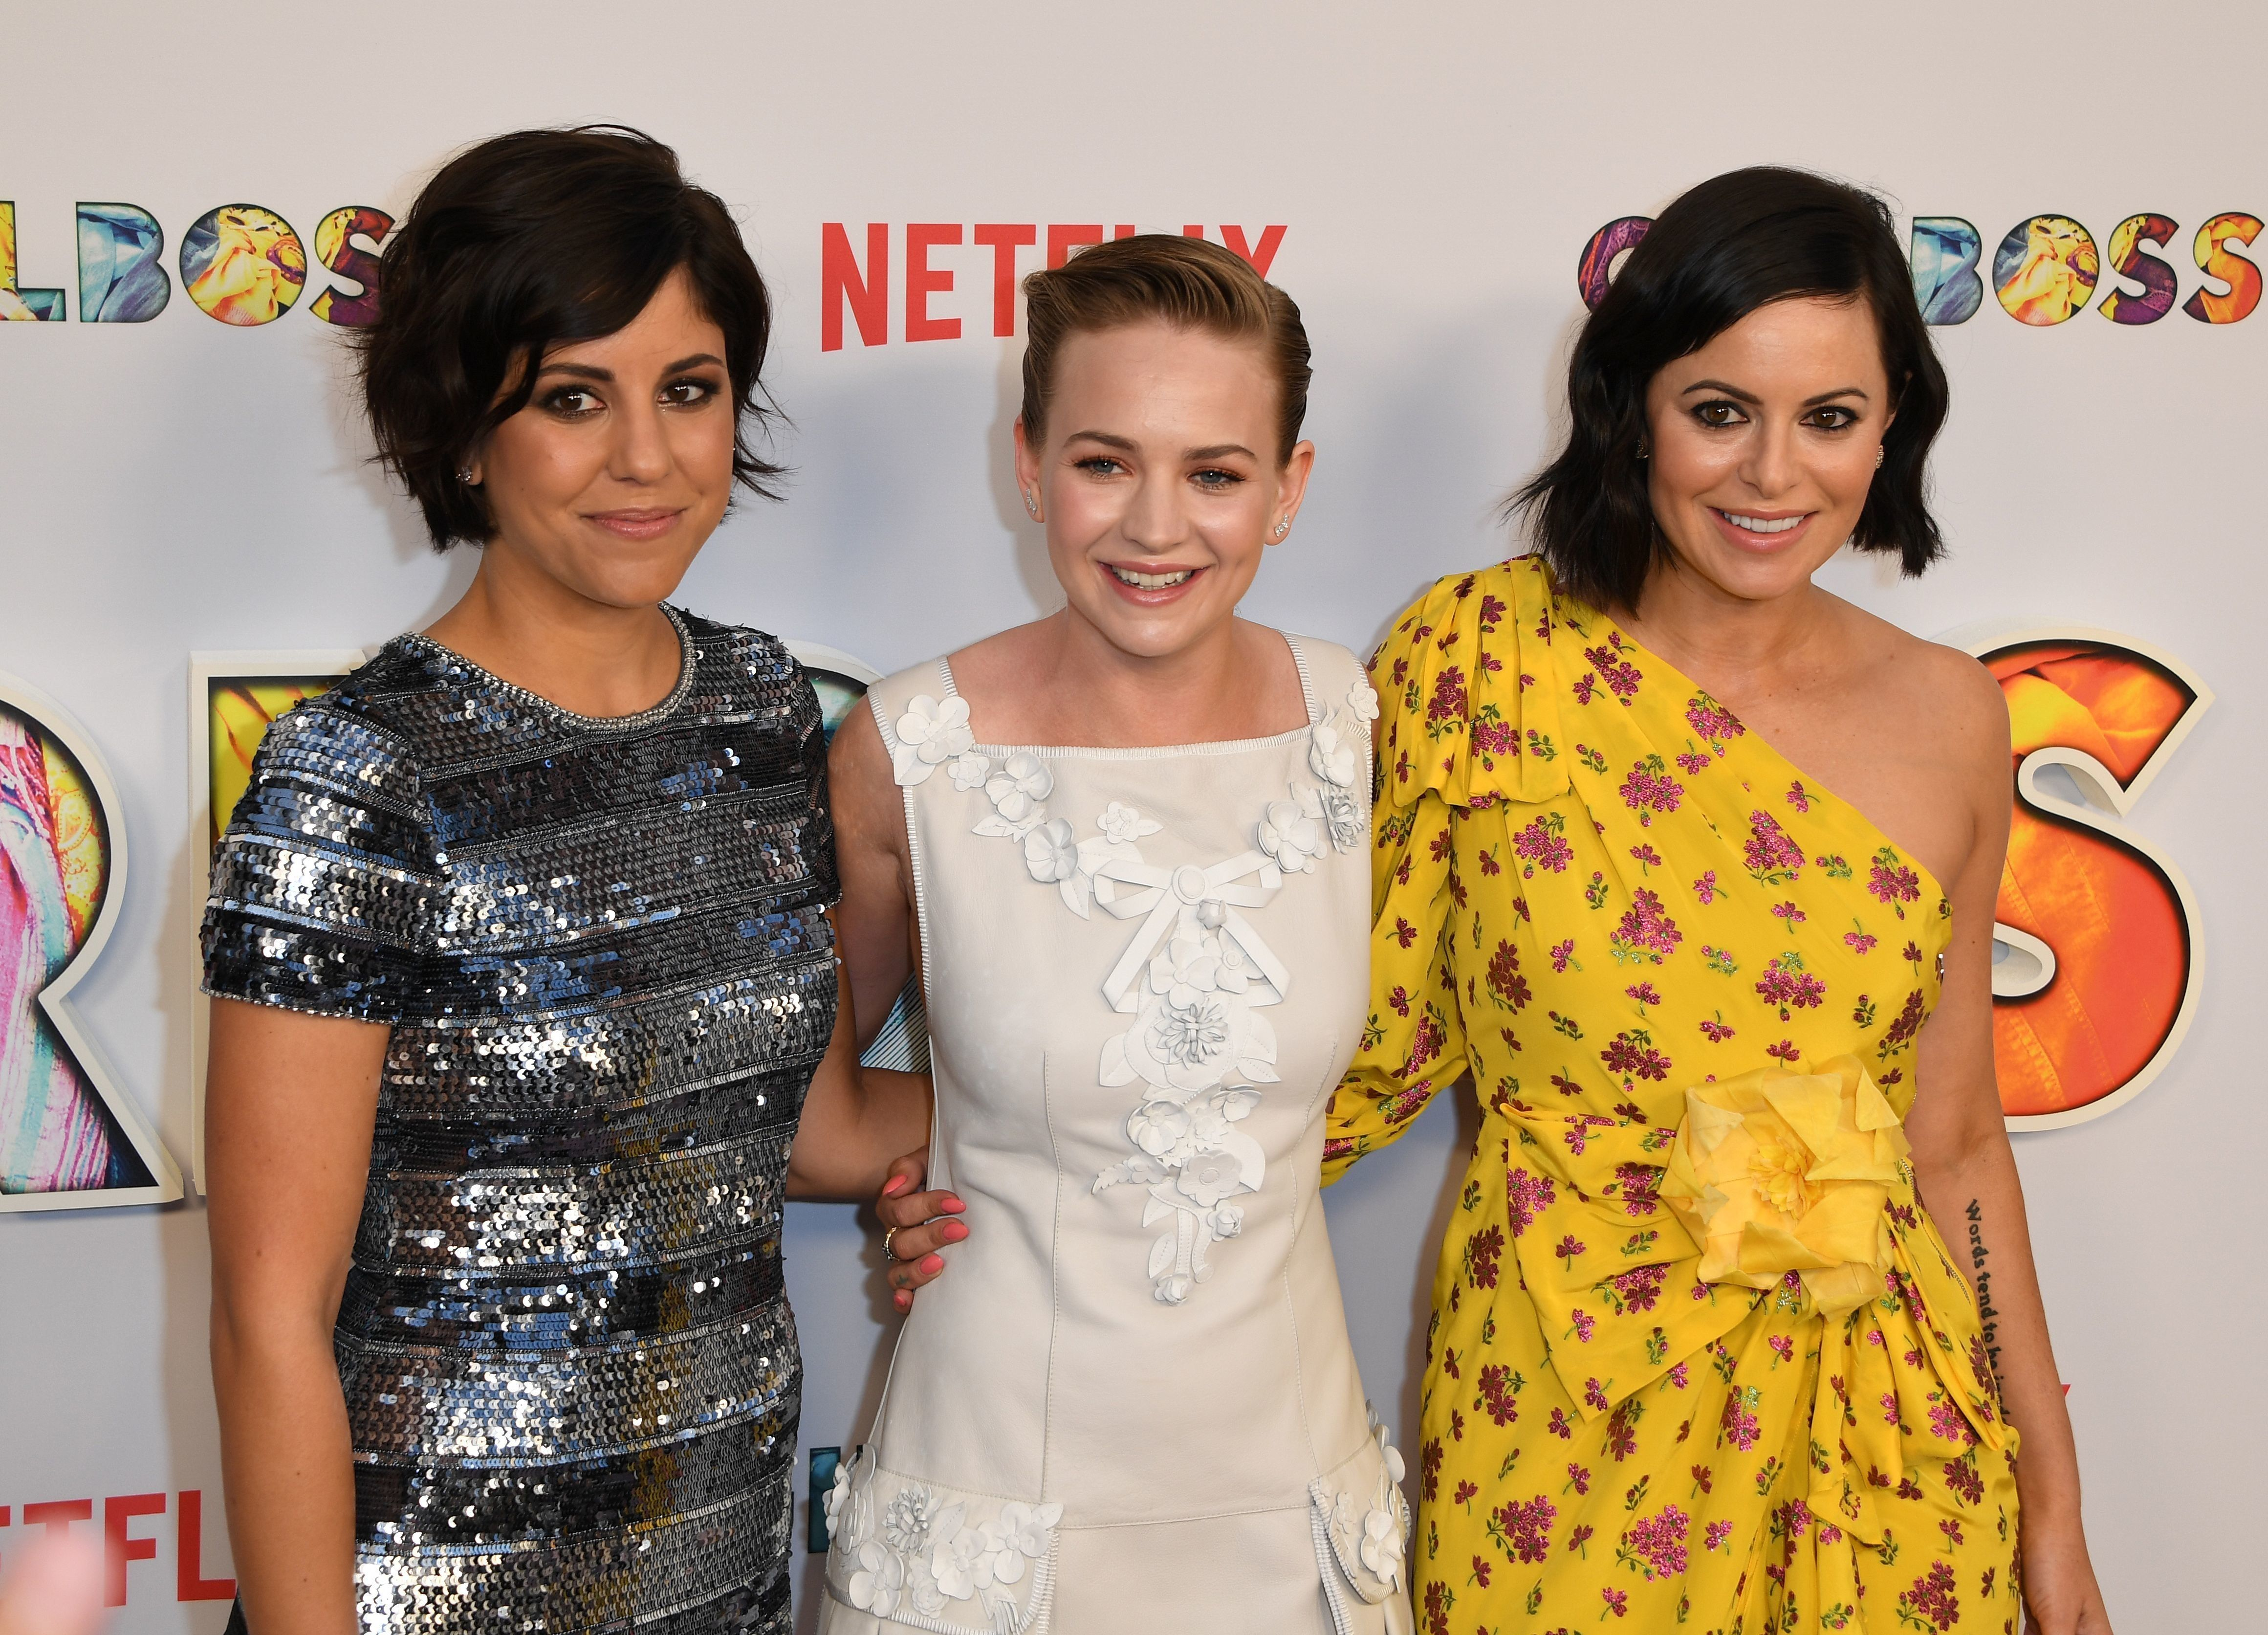 (L-R) Actors Ellie Reed, Britt Robertson and executive producer Sophia Amoruso arrive for the premiere of Netflix's 'Girlboss' at ArcLight Cinemas in Hollywood, California on April 17, 2017. / AFP PHOTO / Mark RALSTON        (Photo credit should read MARK RALSTON/AFP/Getty Images)